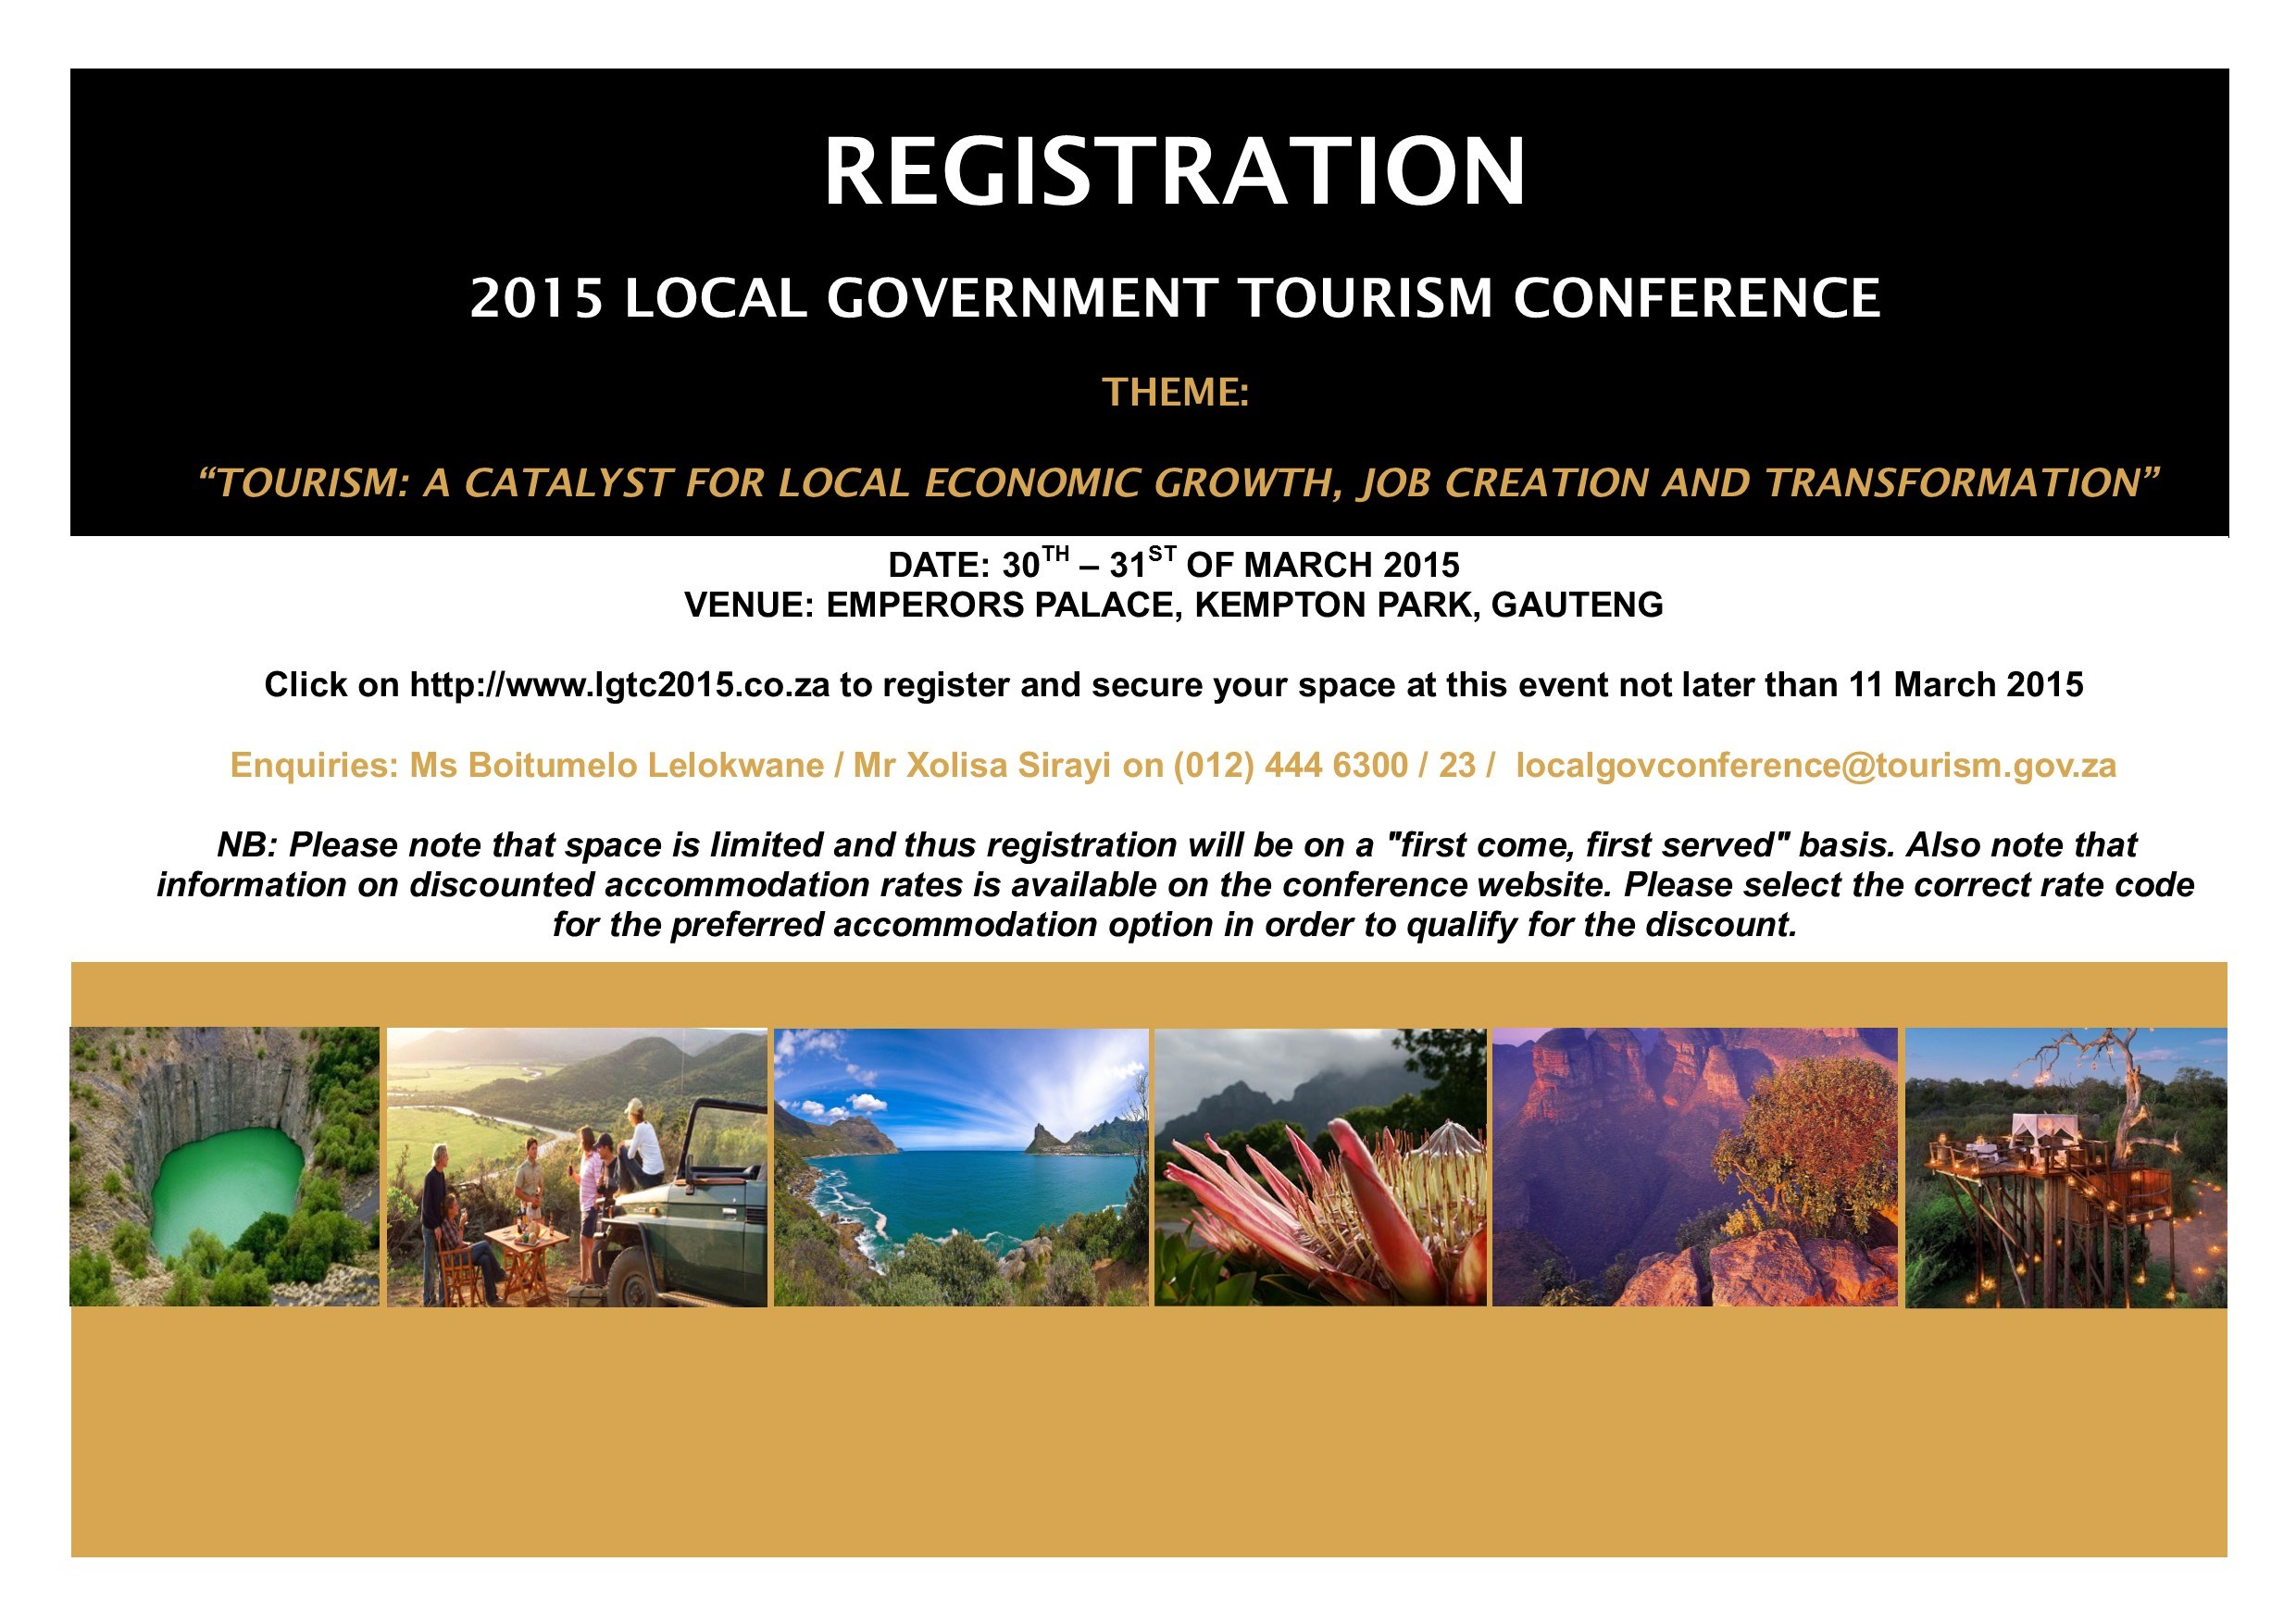 Please register for the Local Government Tourism Conference - detail below.